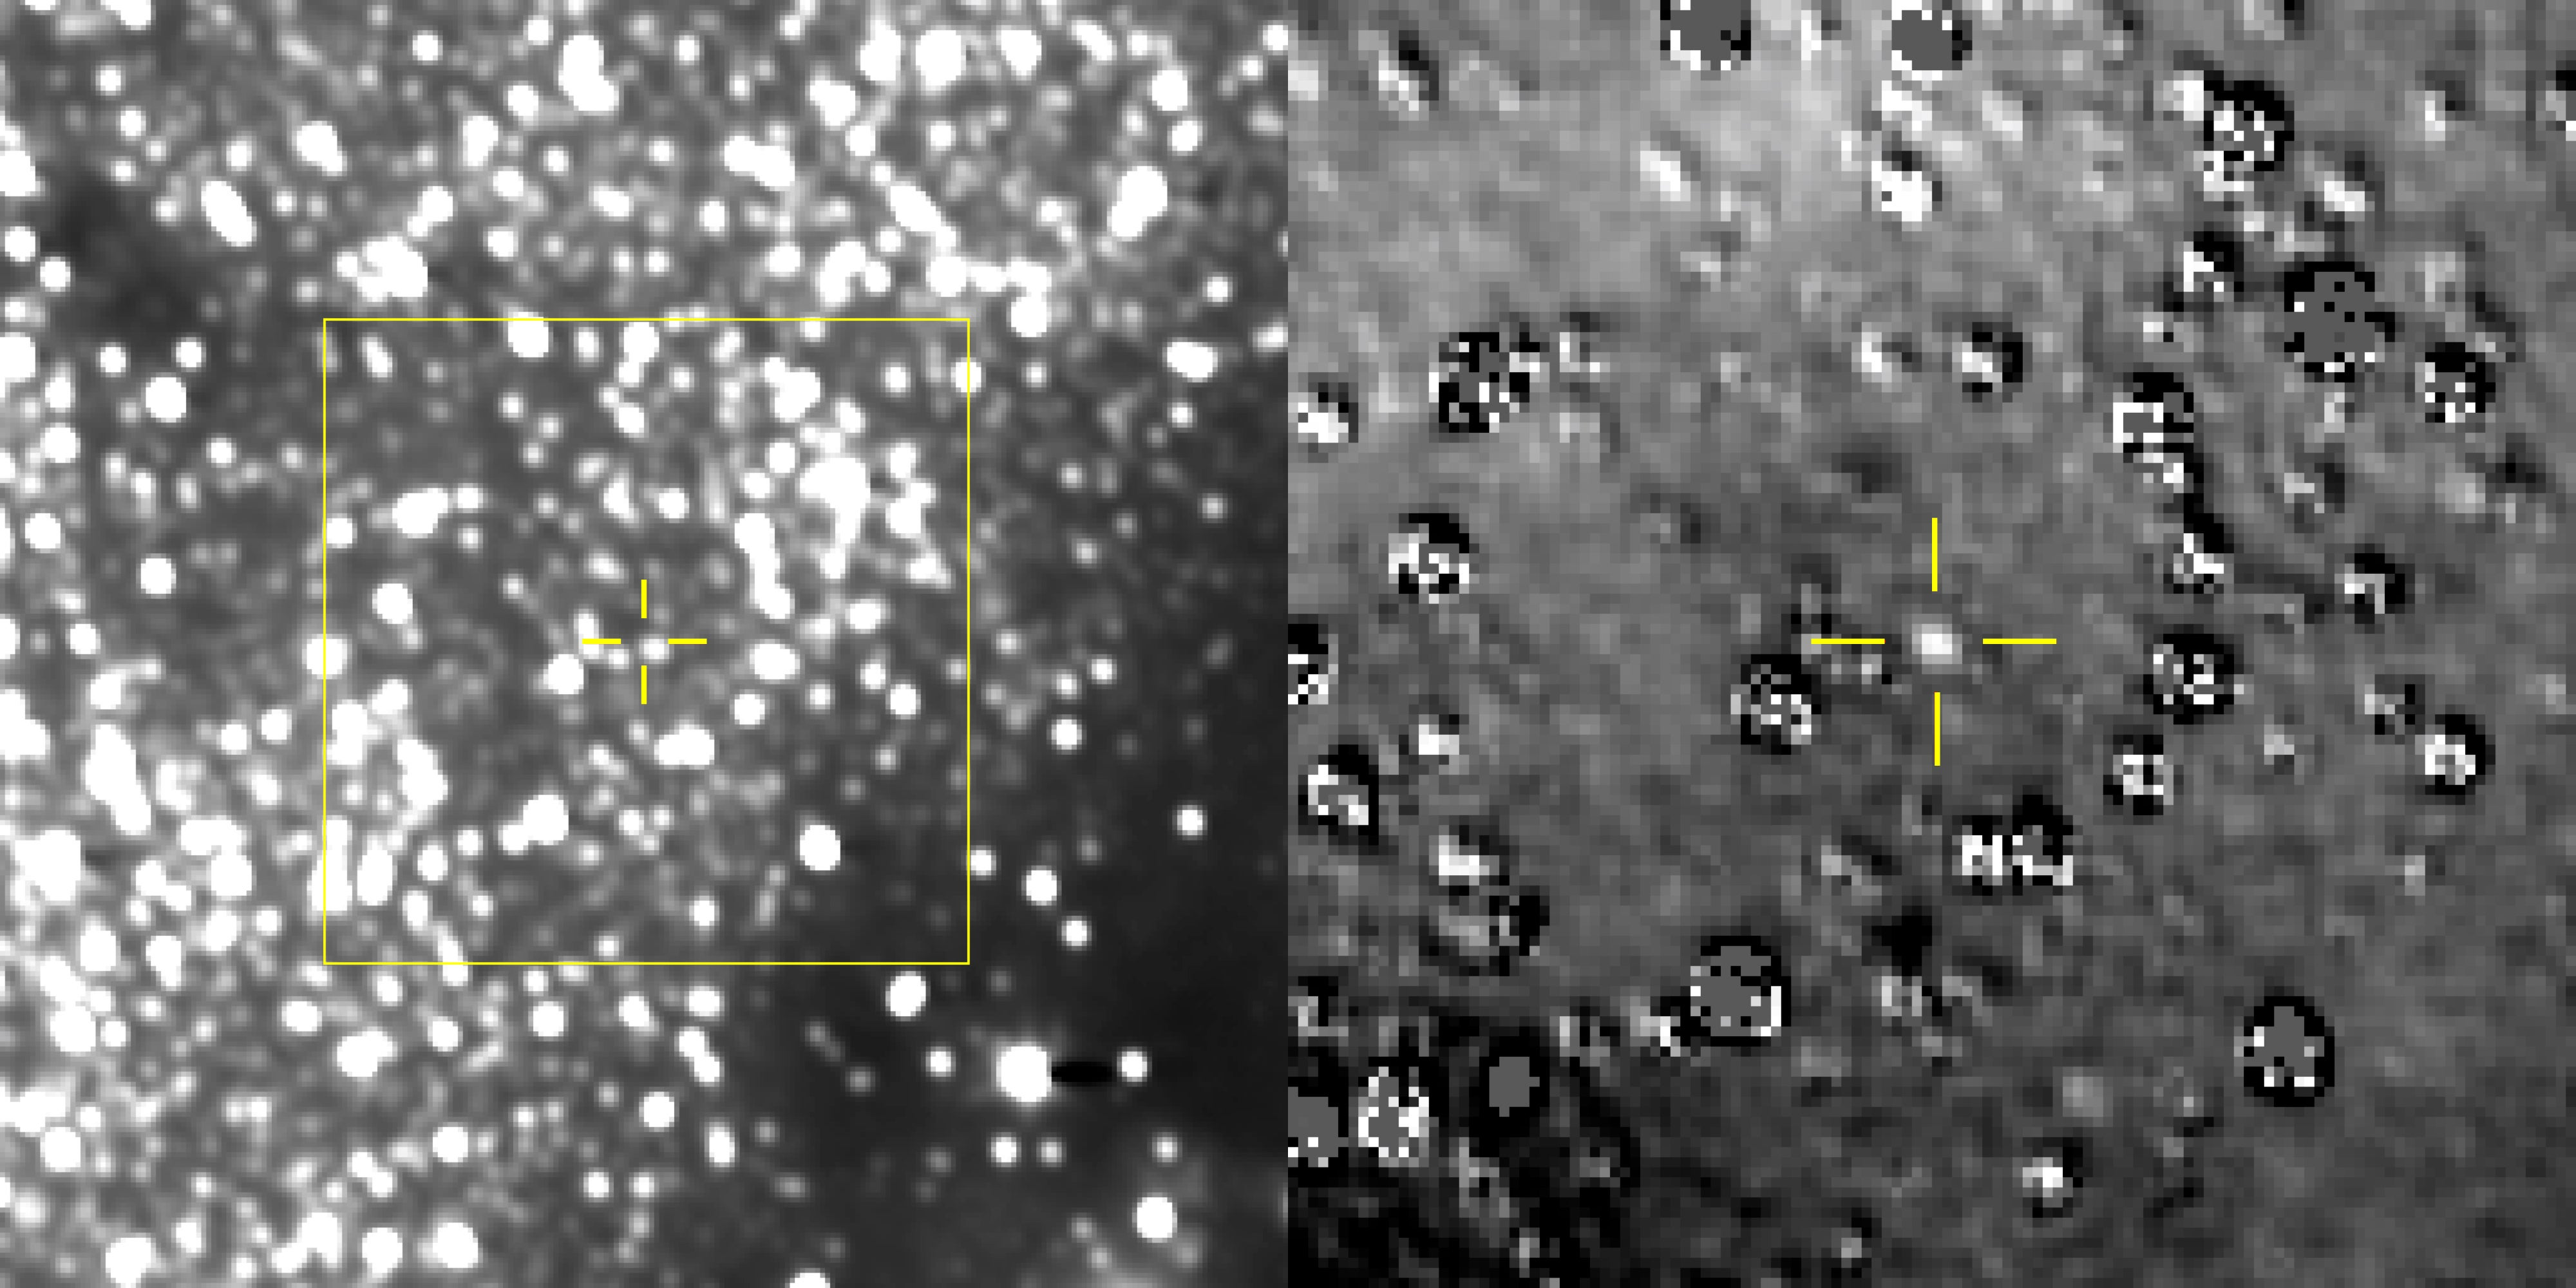 NASA's New Horizons Spacecraft Captures Its First Photo Of